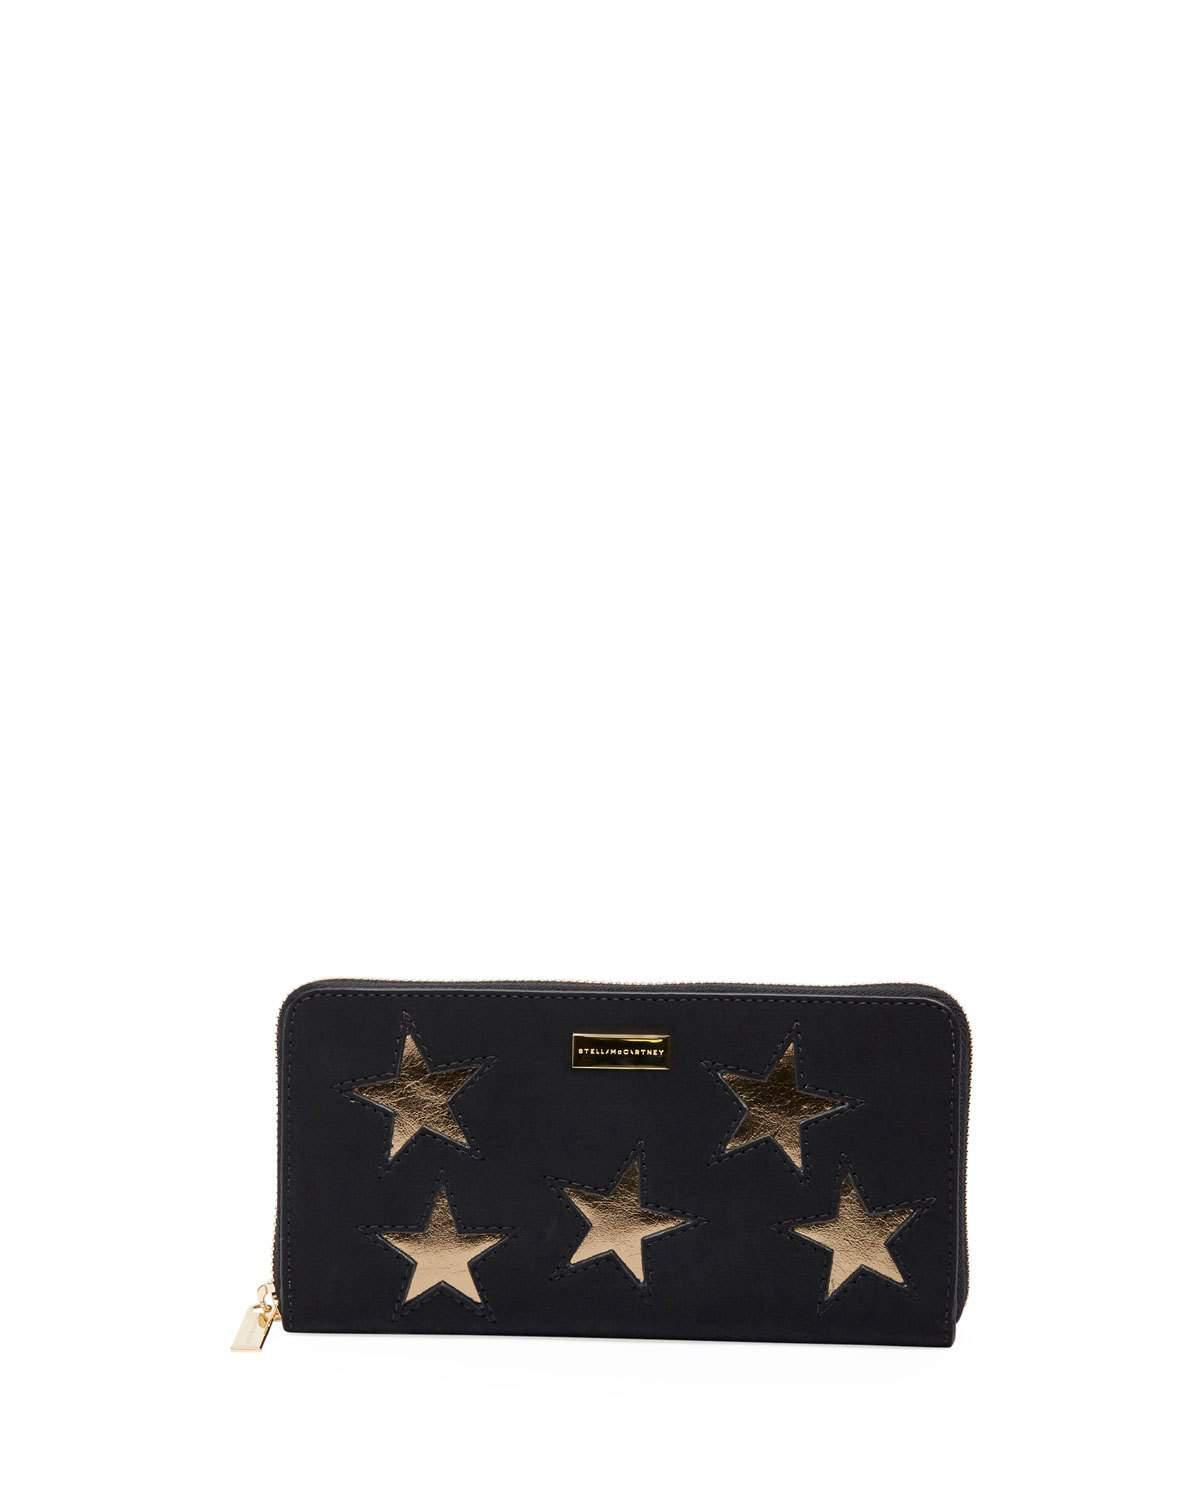 star embellished wallet - Black Stella McCartney wCgKyyubs